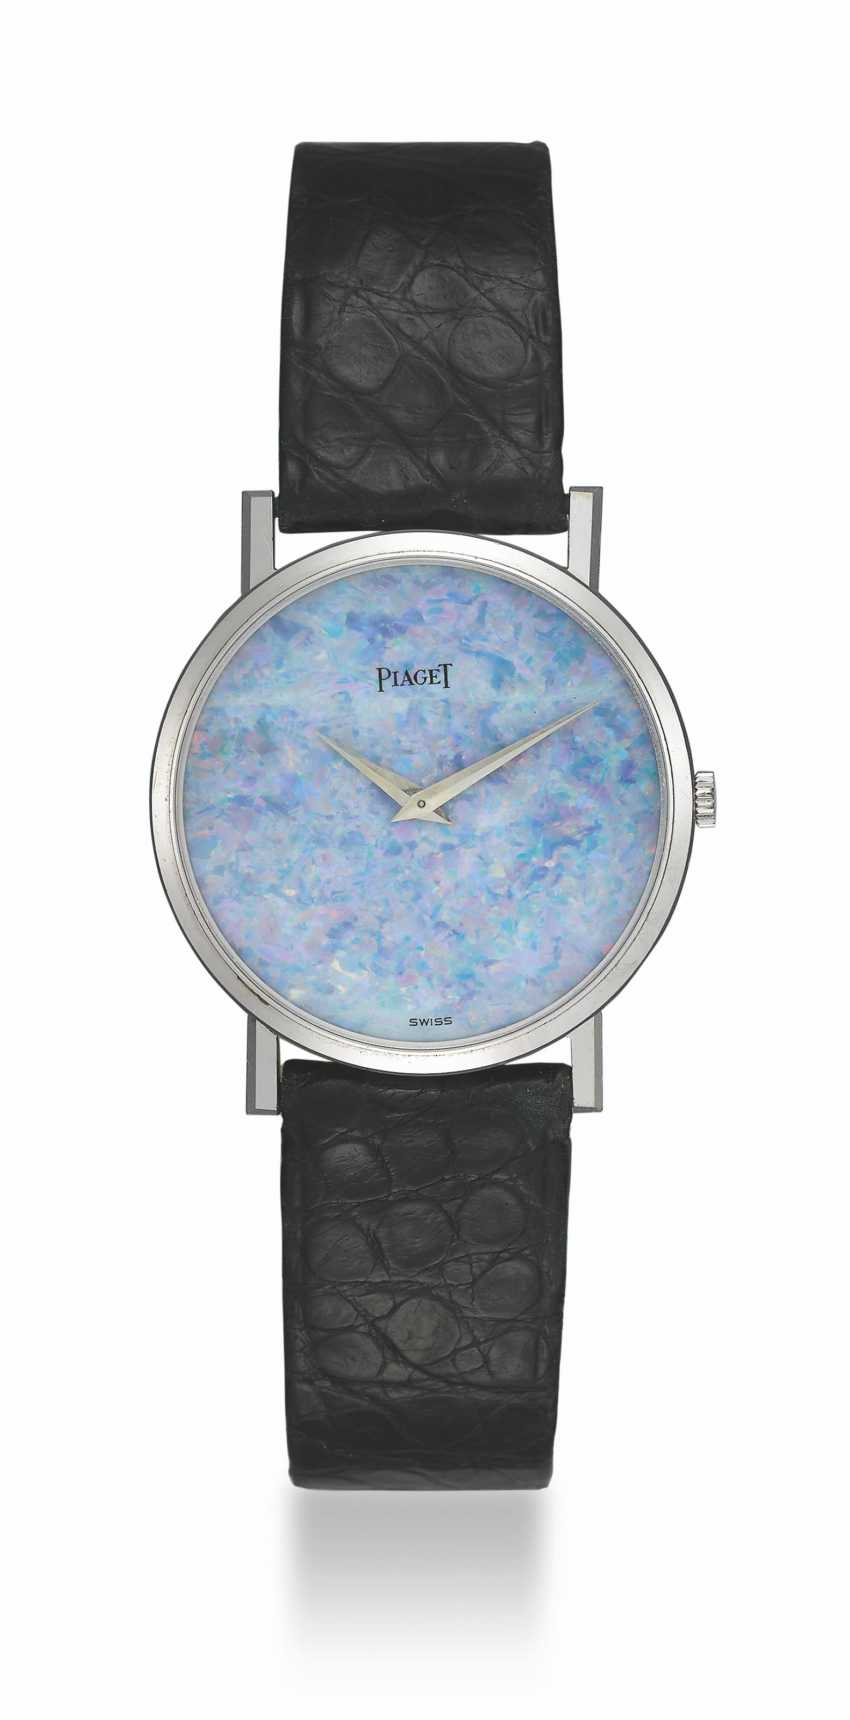 PIAGET, WHITE GOLD WITH OPAL HARD STONE DIAL - photo 1